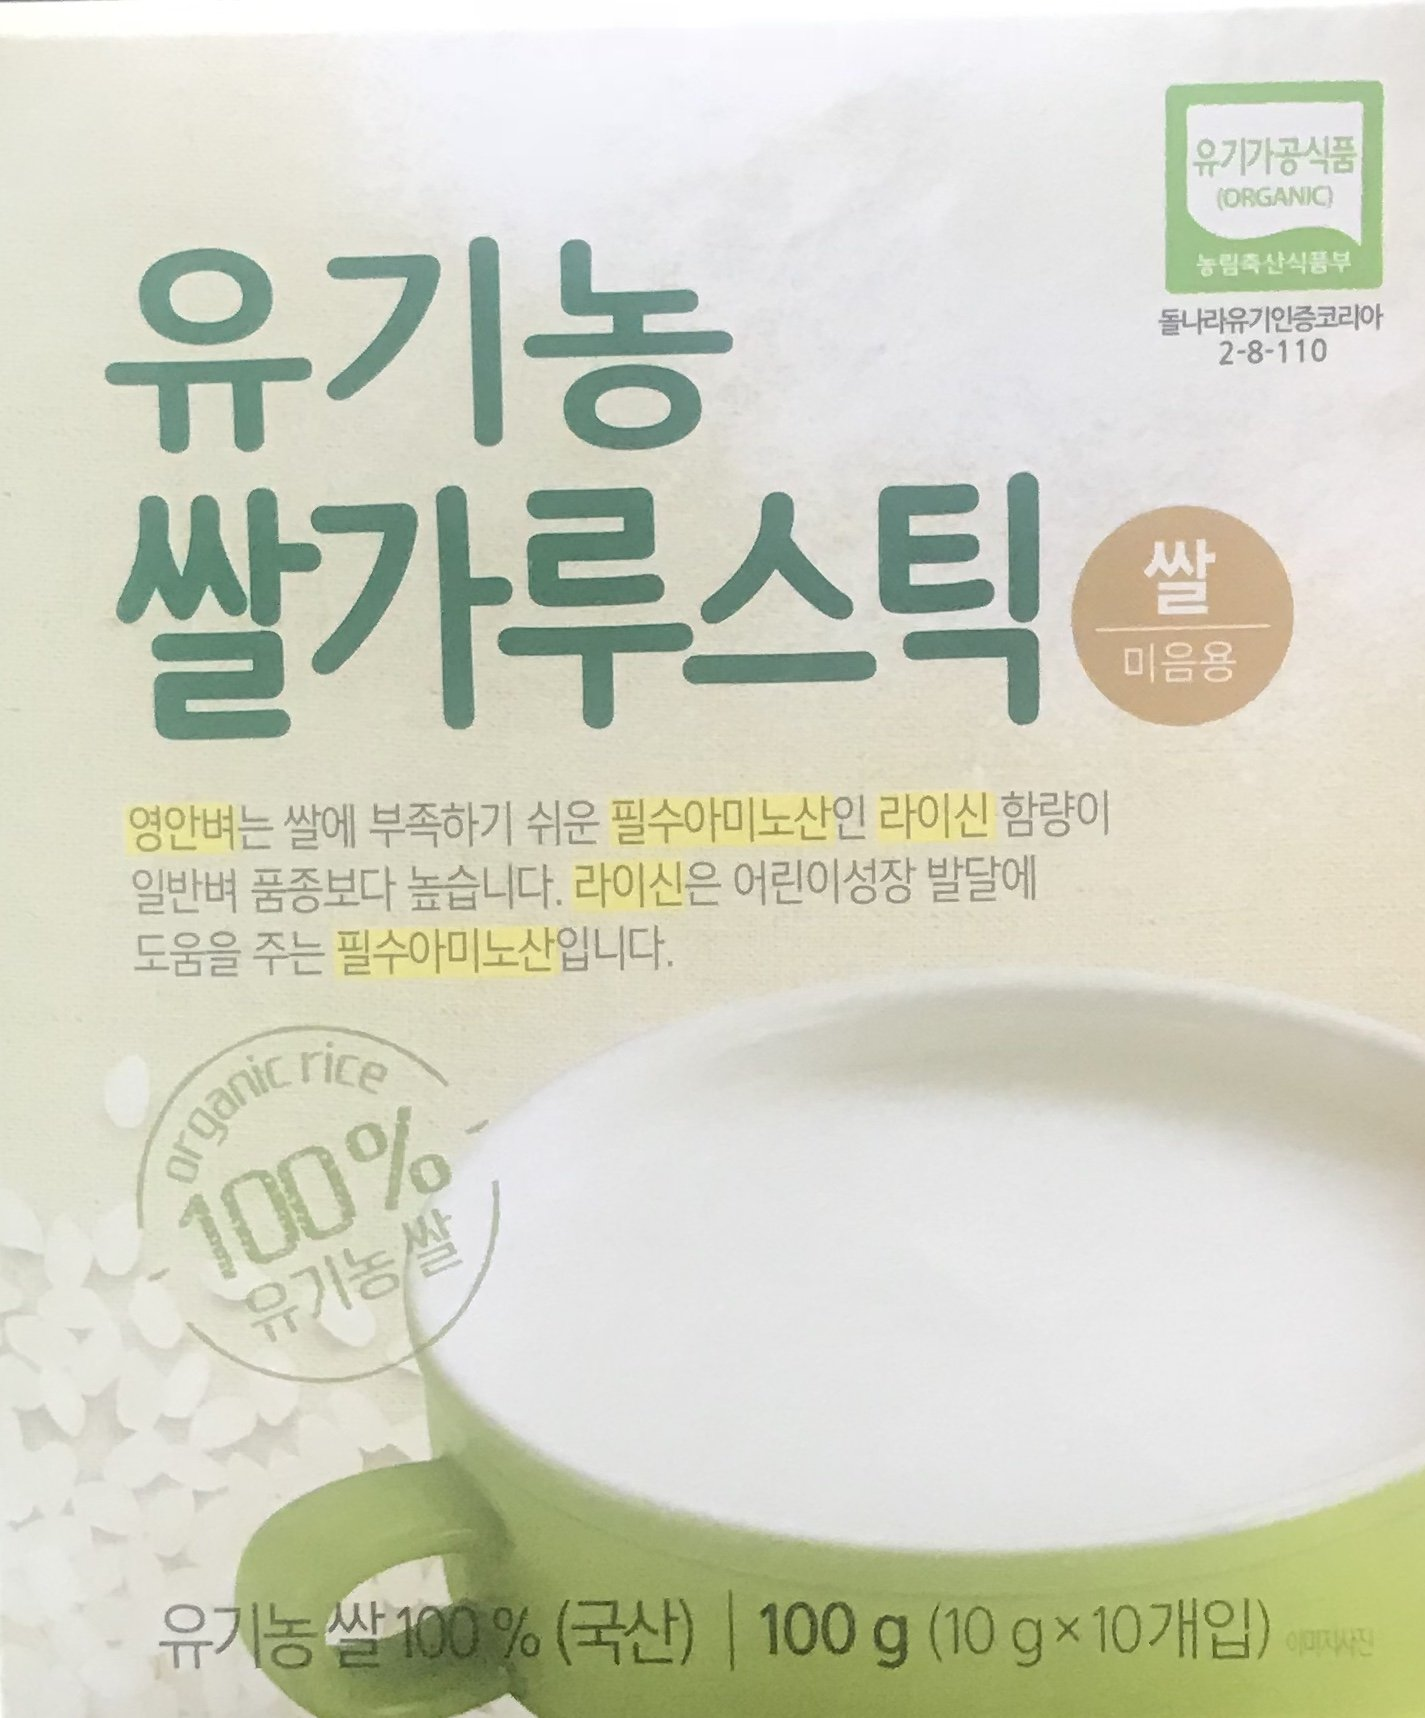 Organic rice powder (suitable for 4 months-old and over)